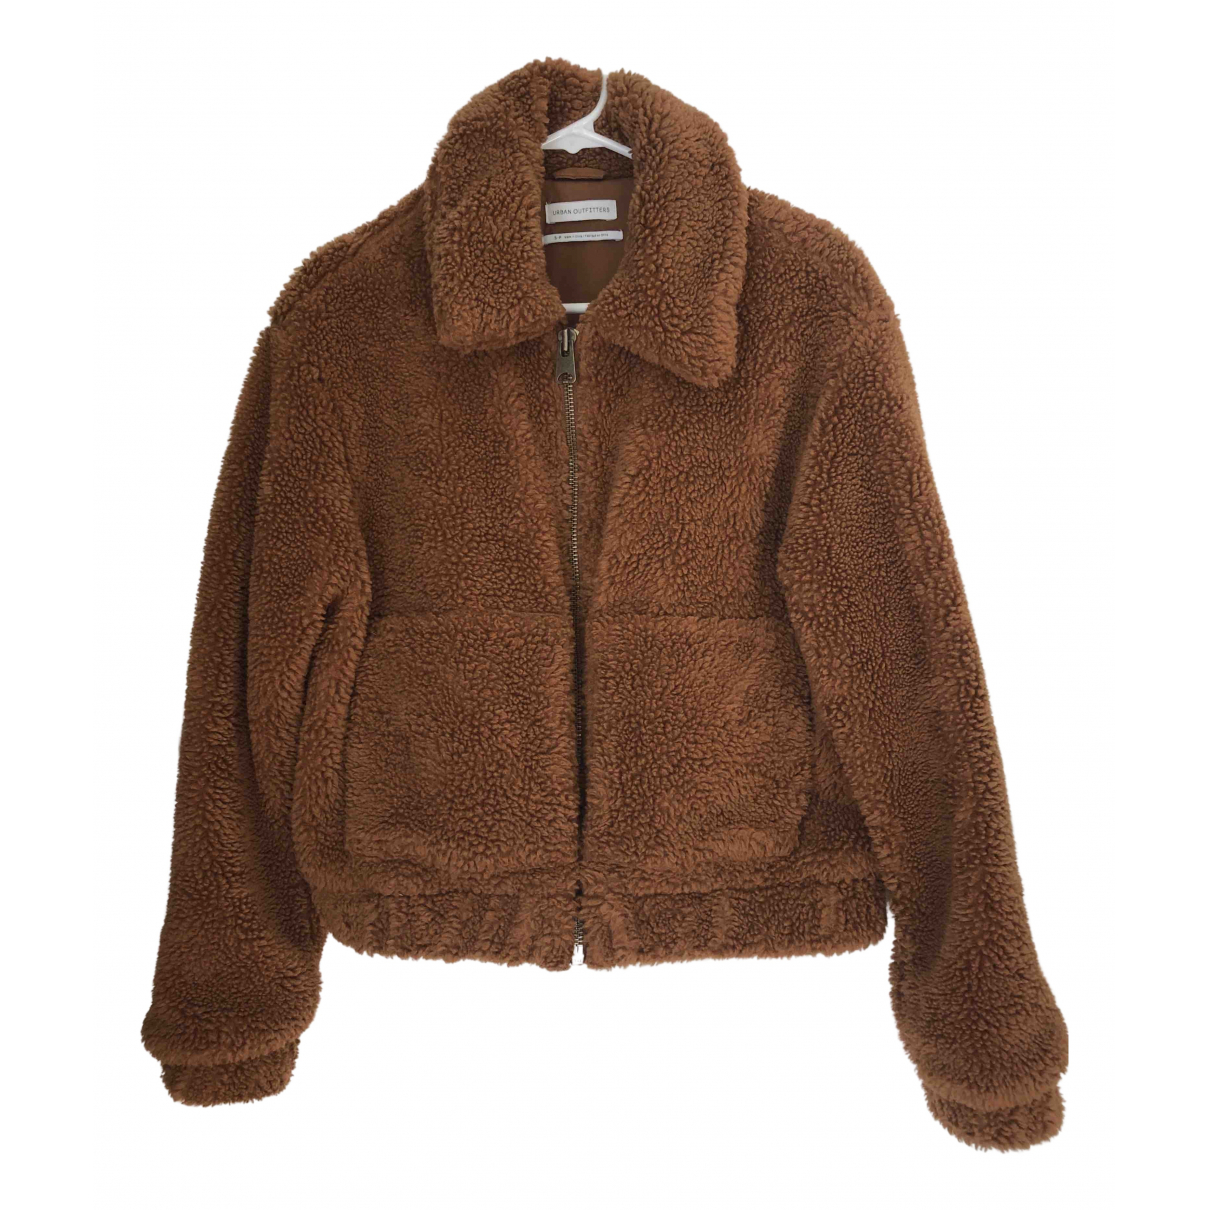 Urban Outfitters N Brown jacket for Women S International